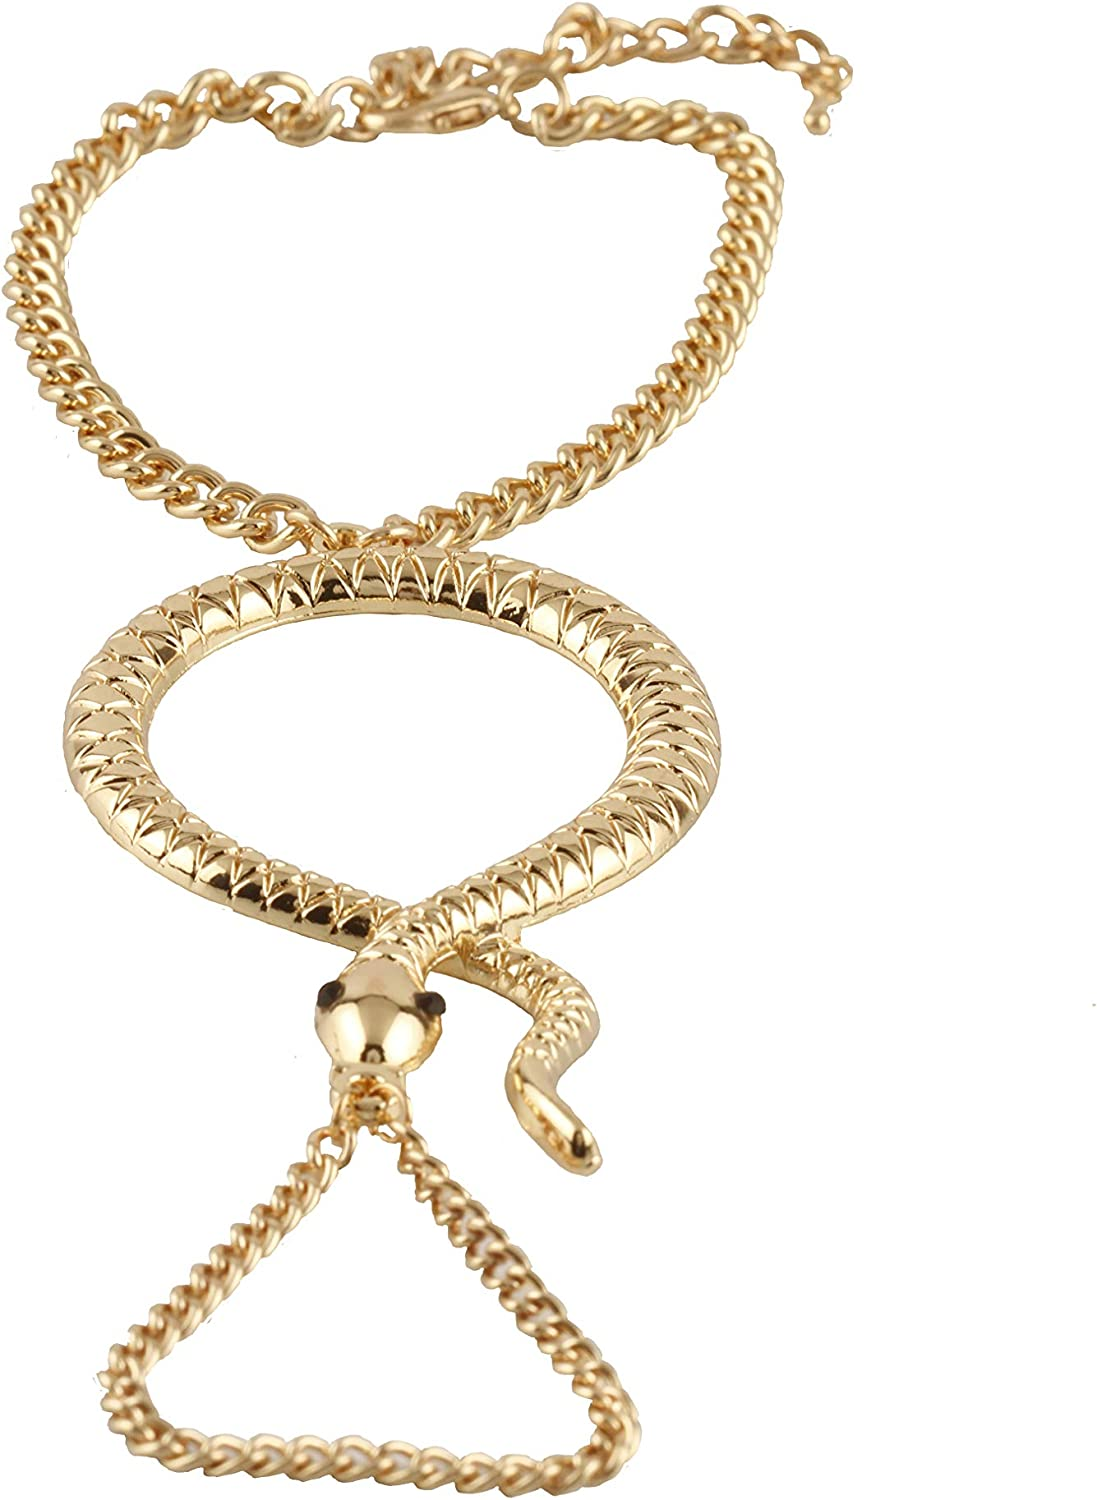 JOTW Goldtone Snake Adjustable Finger Ring and Hand Chain Bracelet: Snake Jewelry: Jewelry